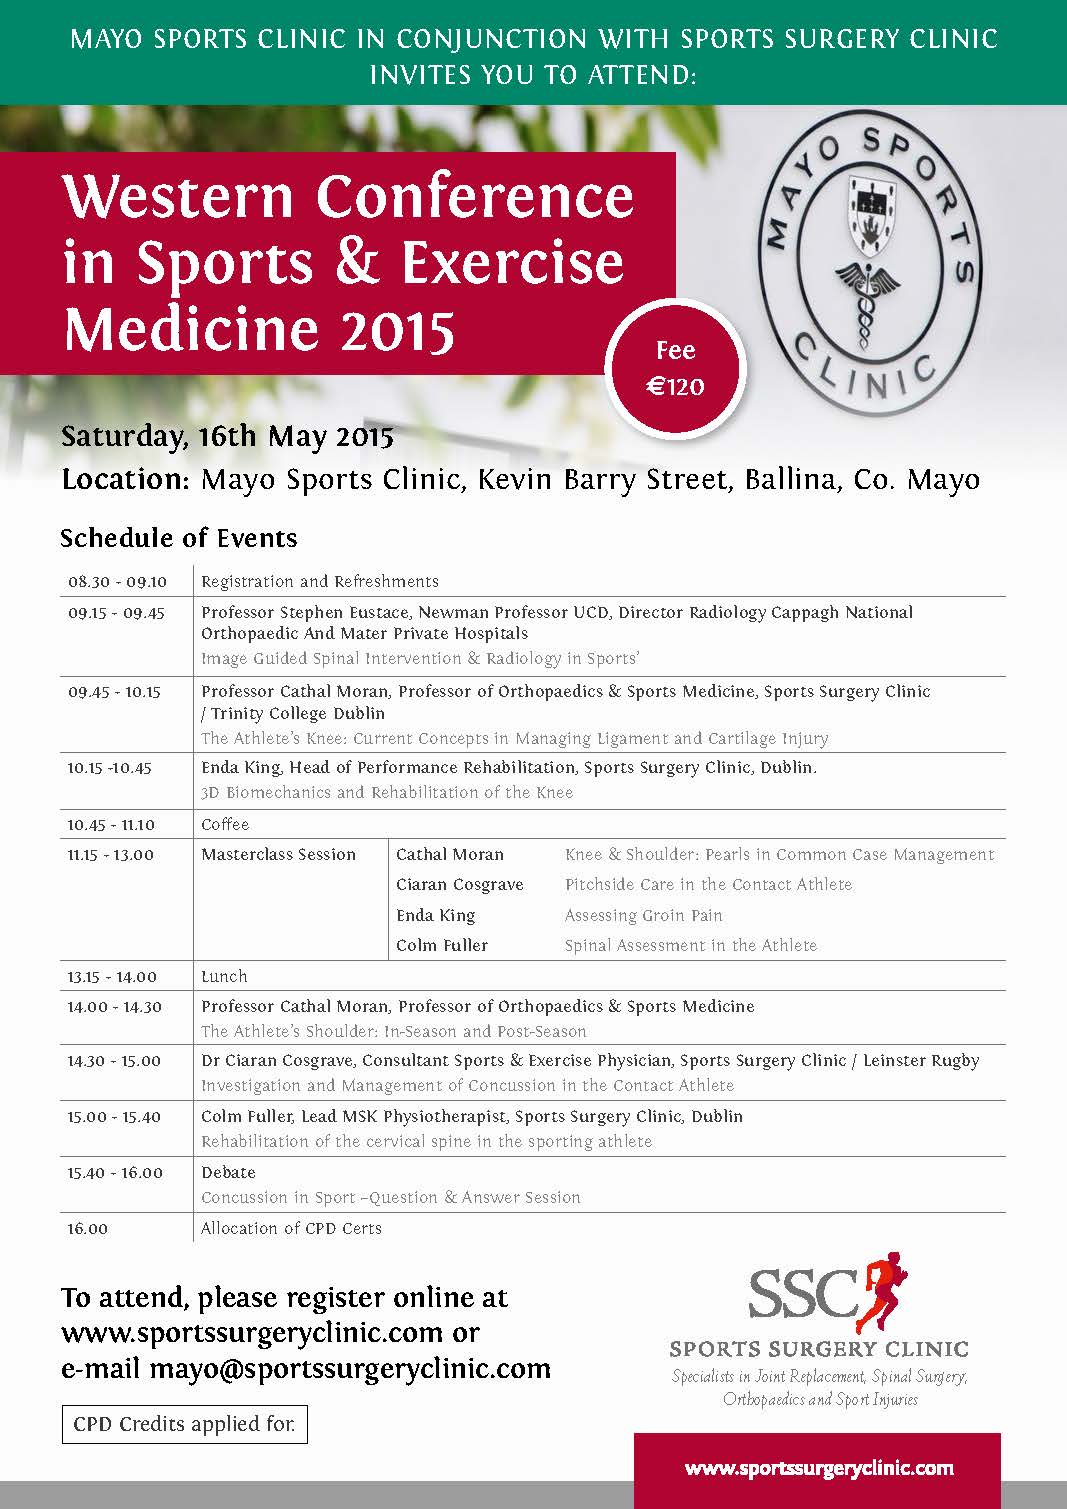 programme schedule for western conference in sports and exercise medicine